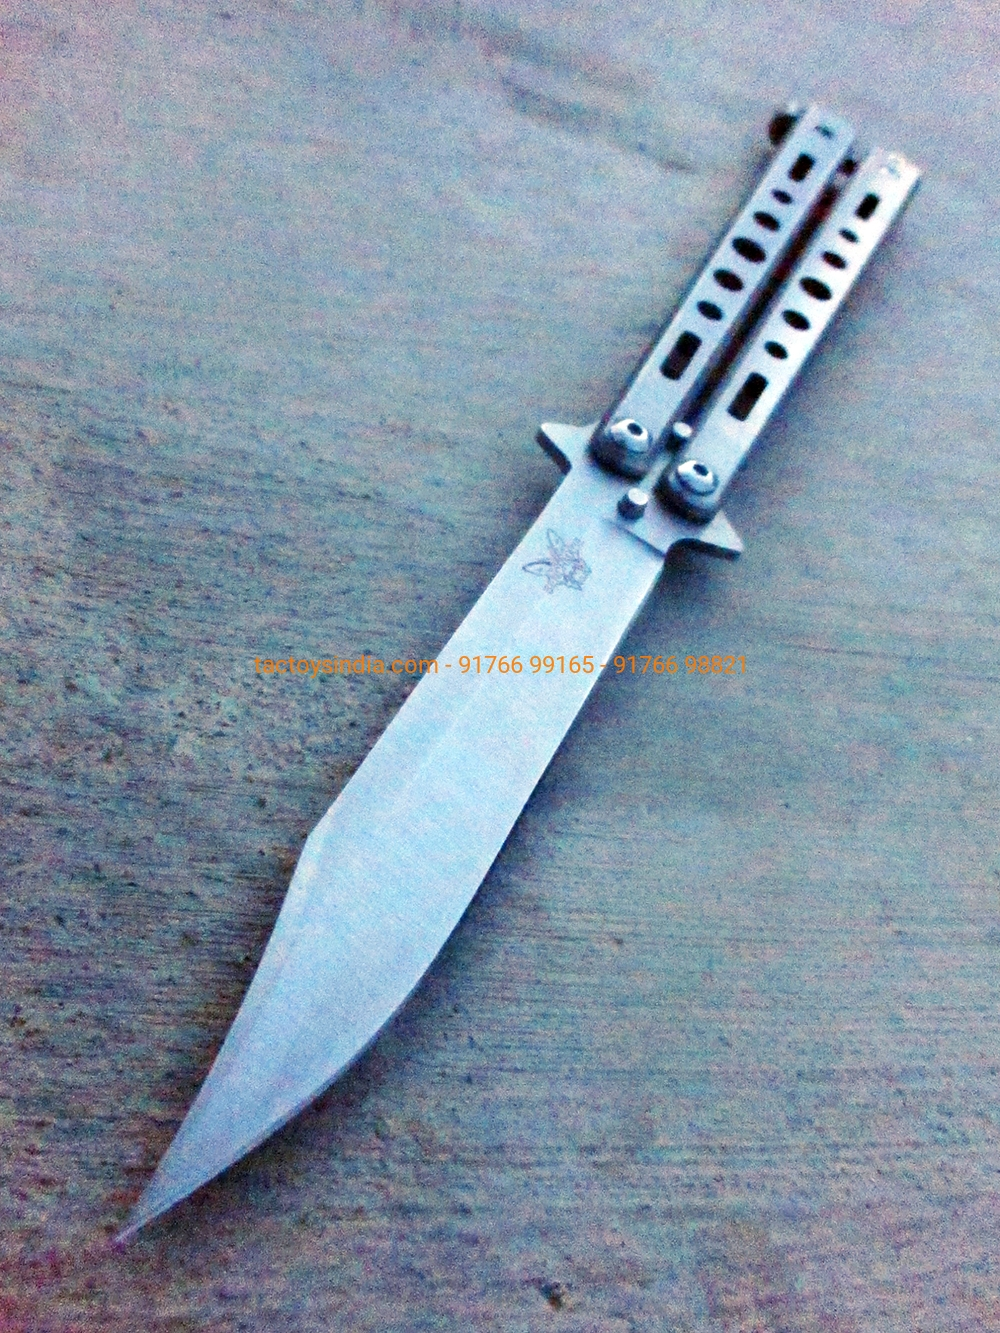 Techno Benchmade Butterfly Knife Silver Tactoys India